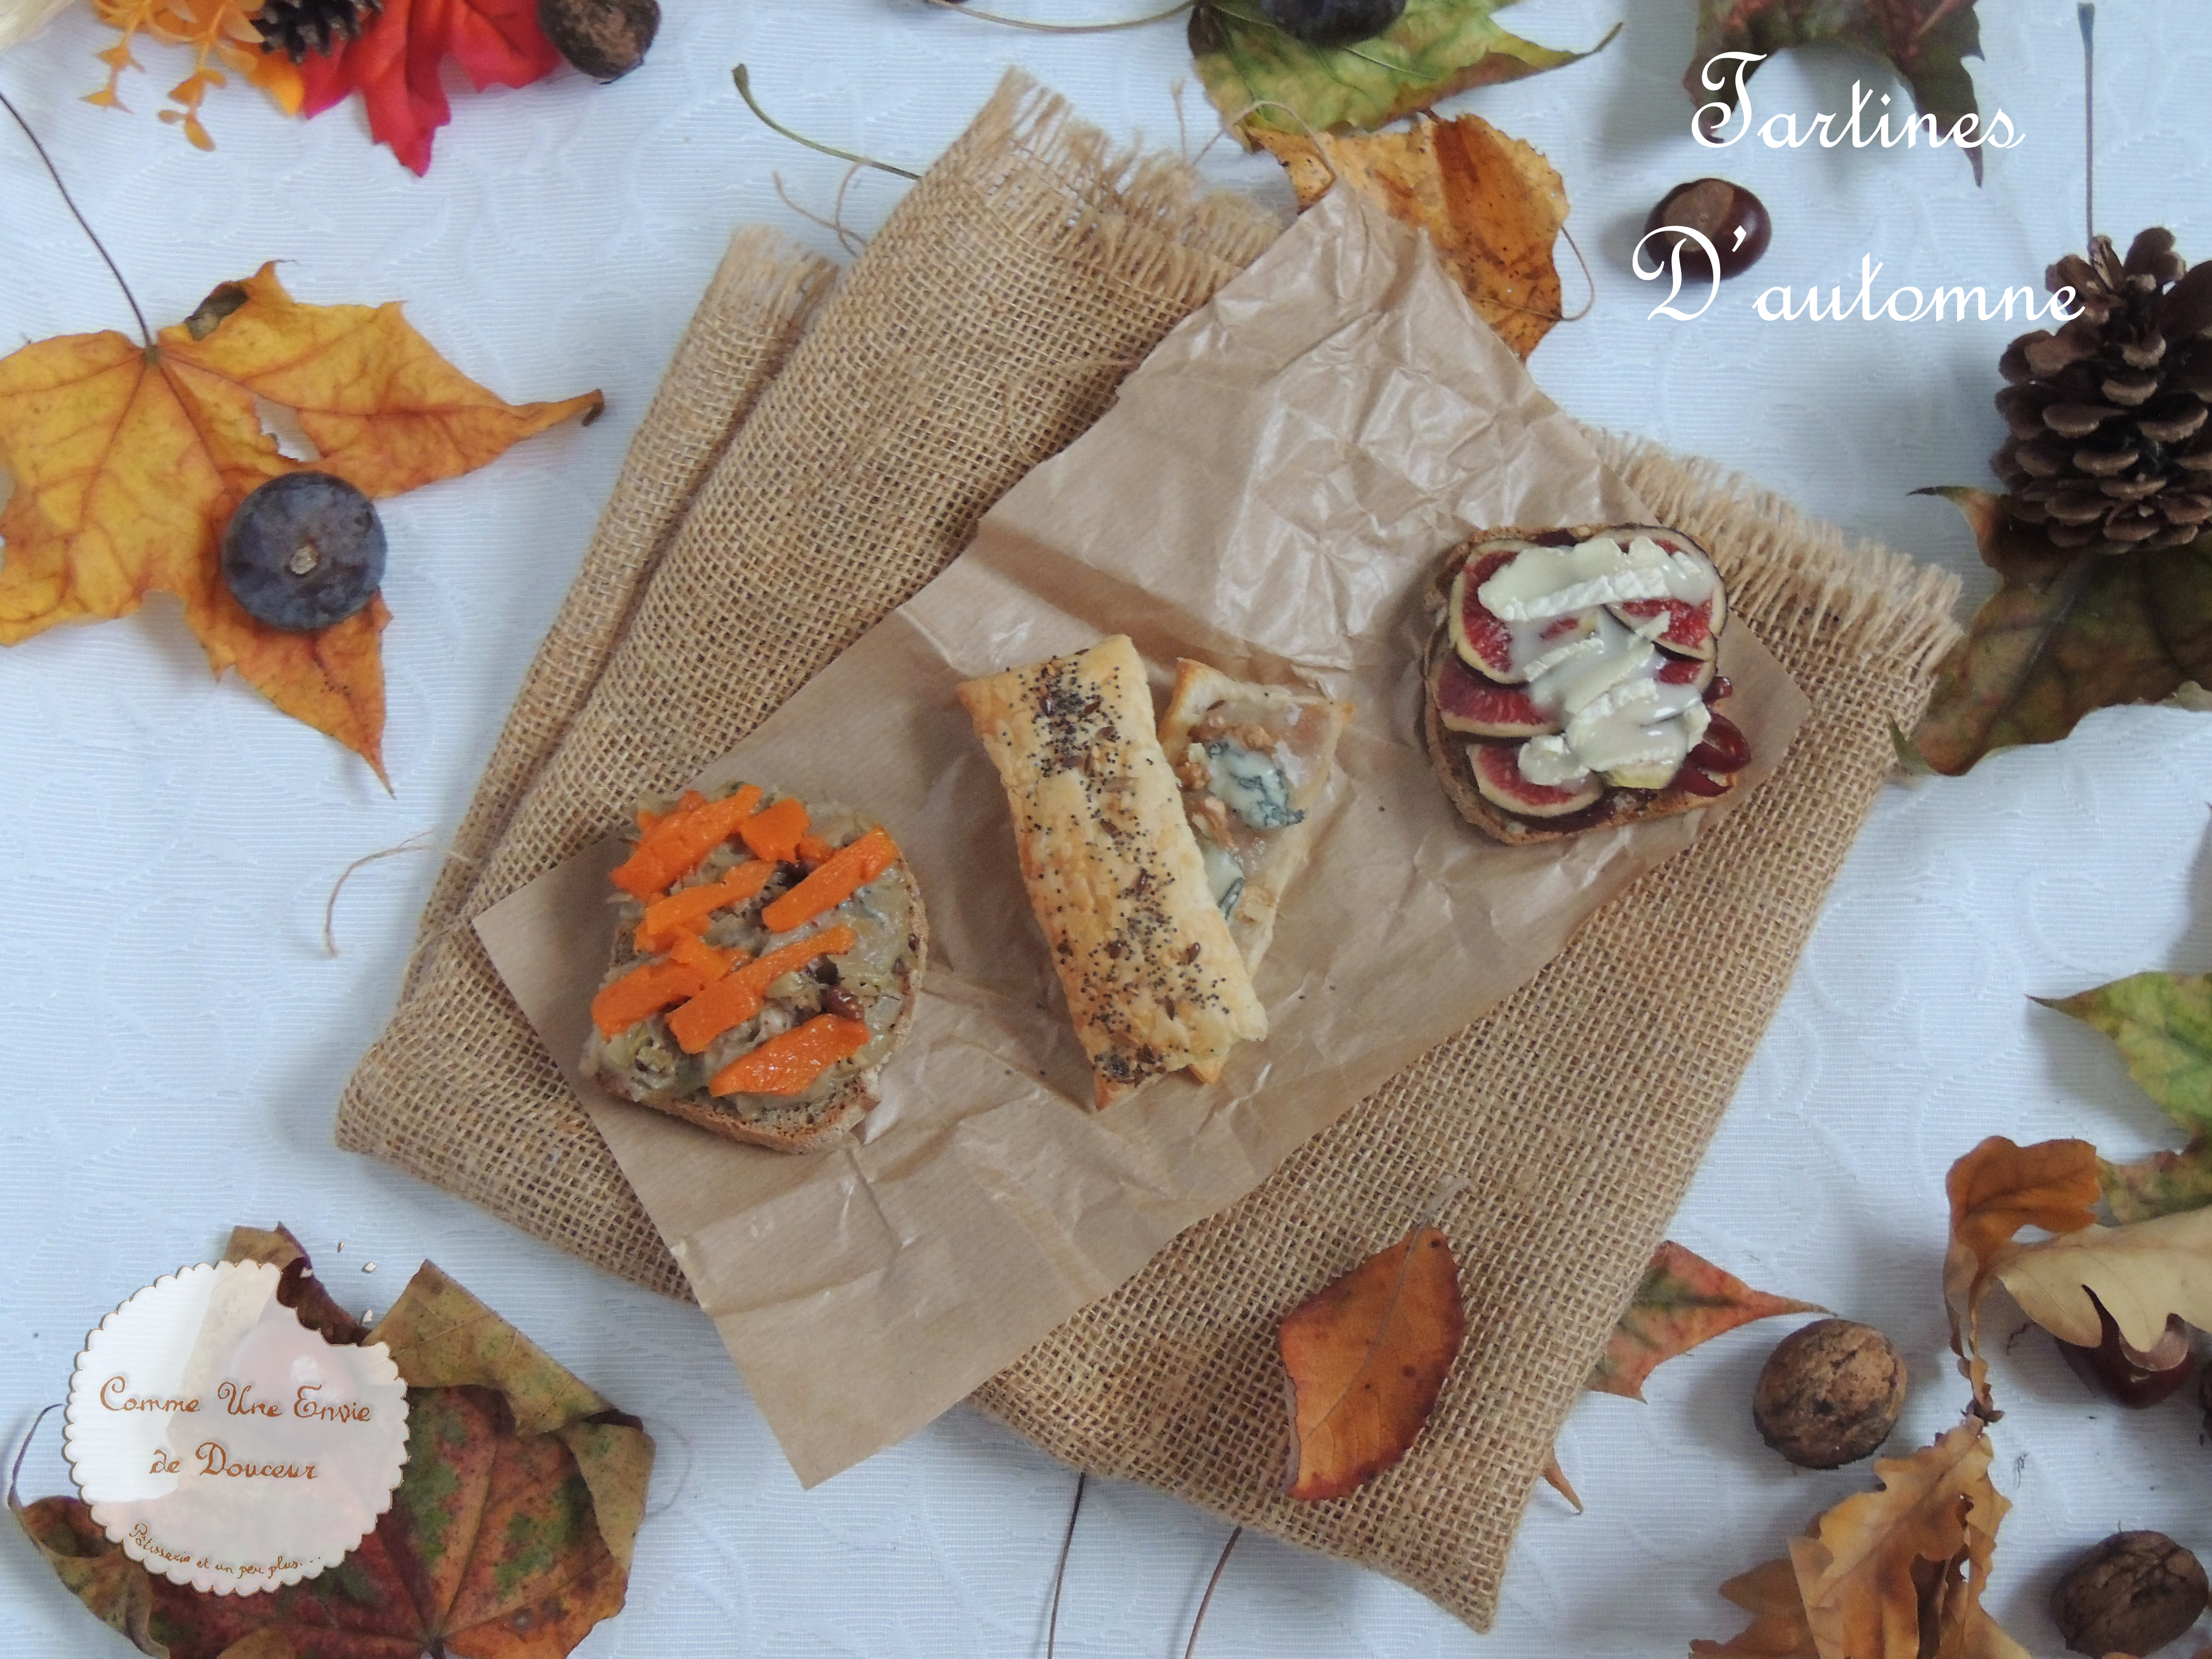 Foodista Challenge #34 Trio de tartines automnales – Fall's flavors toasts